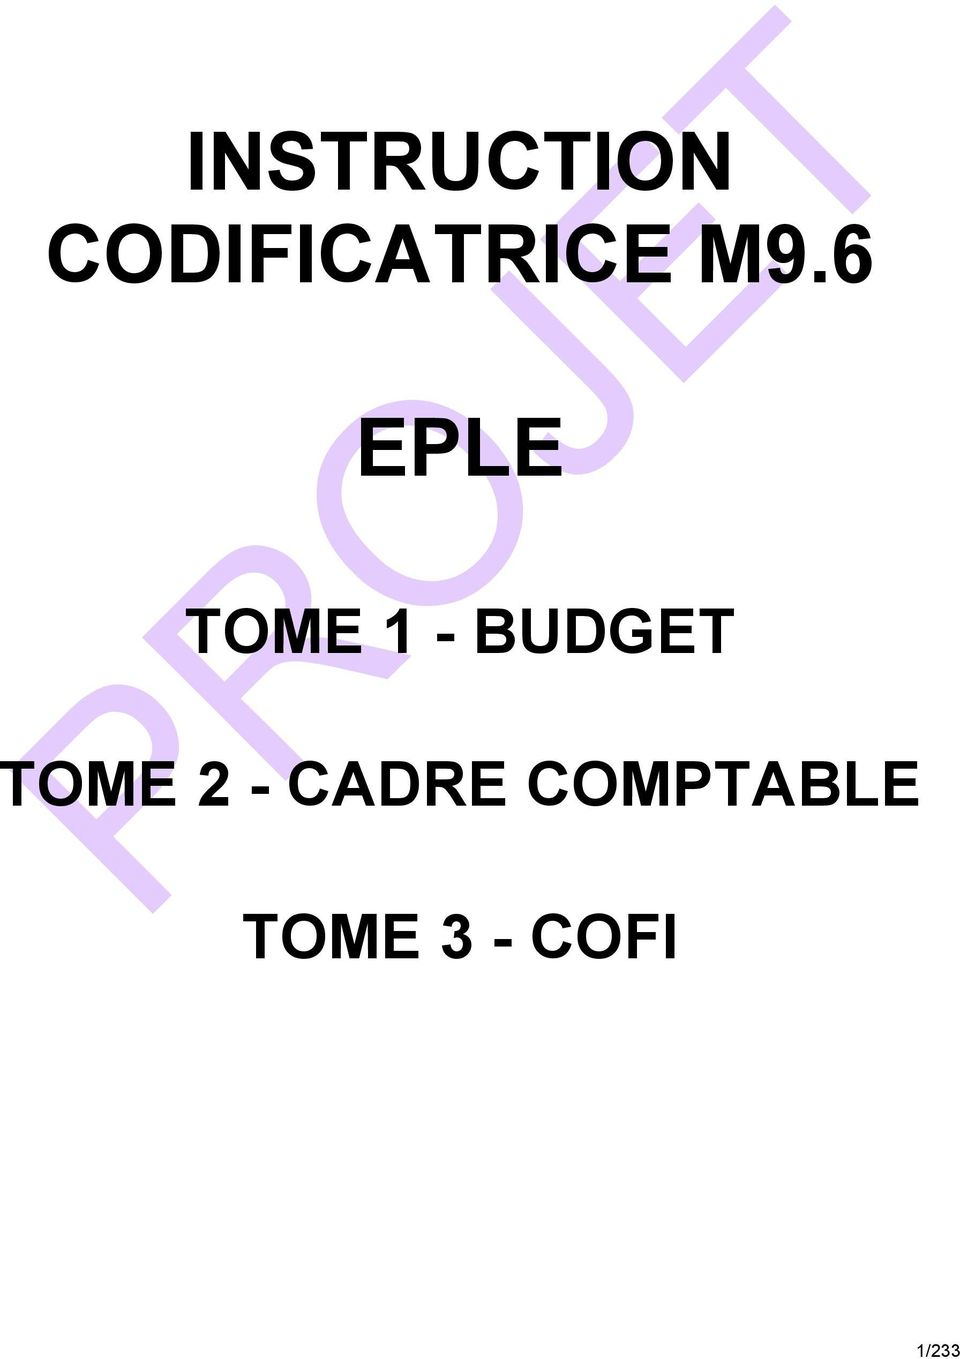 6 EPLE TOME 1 - BUDGET